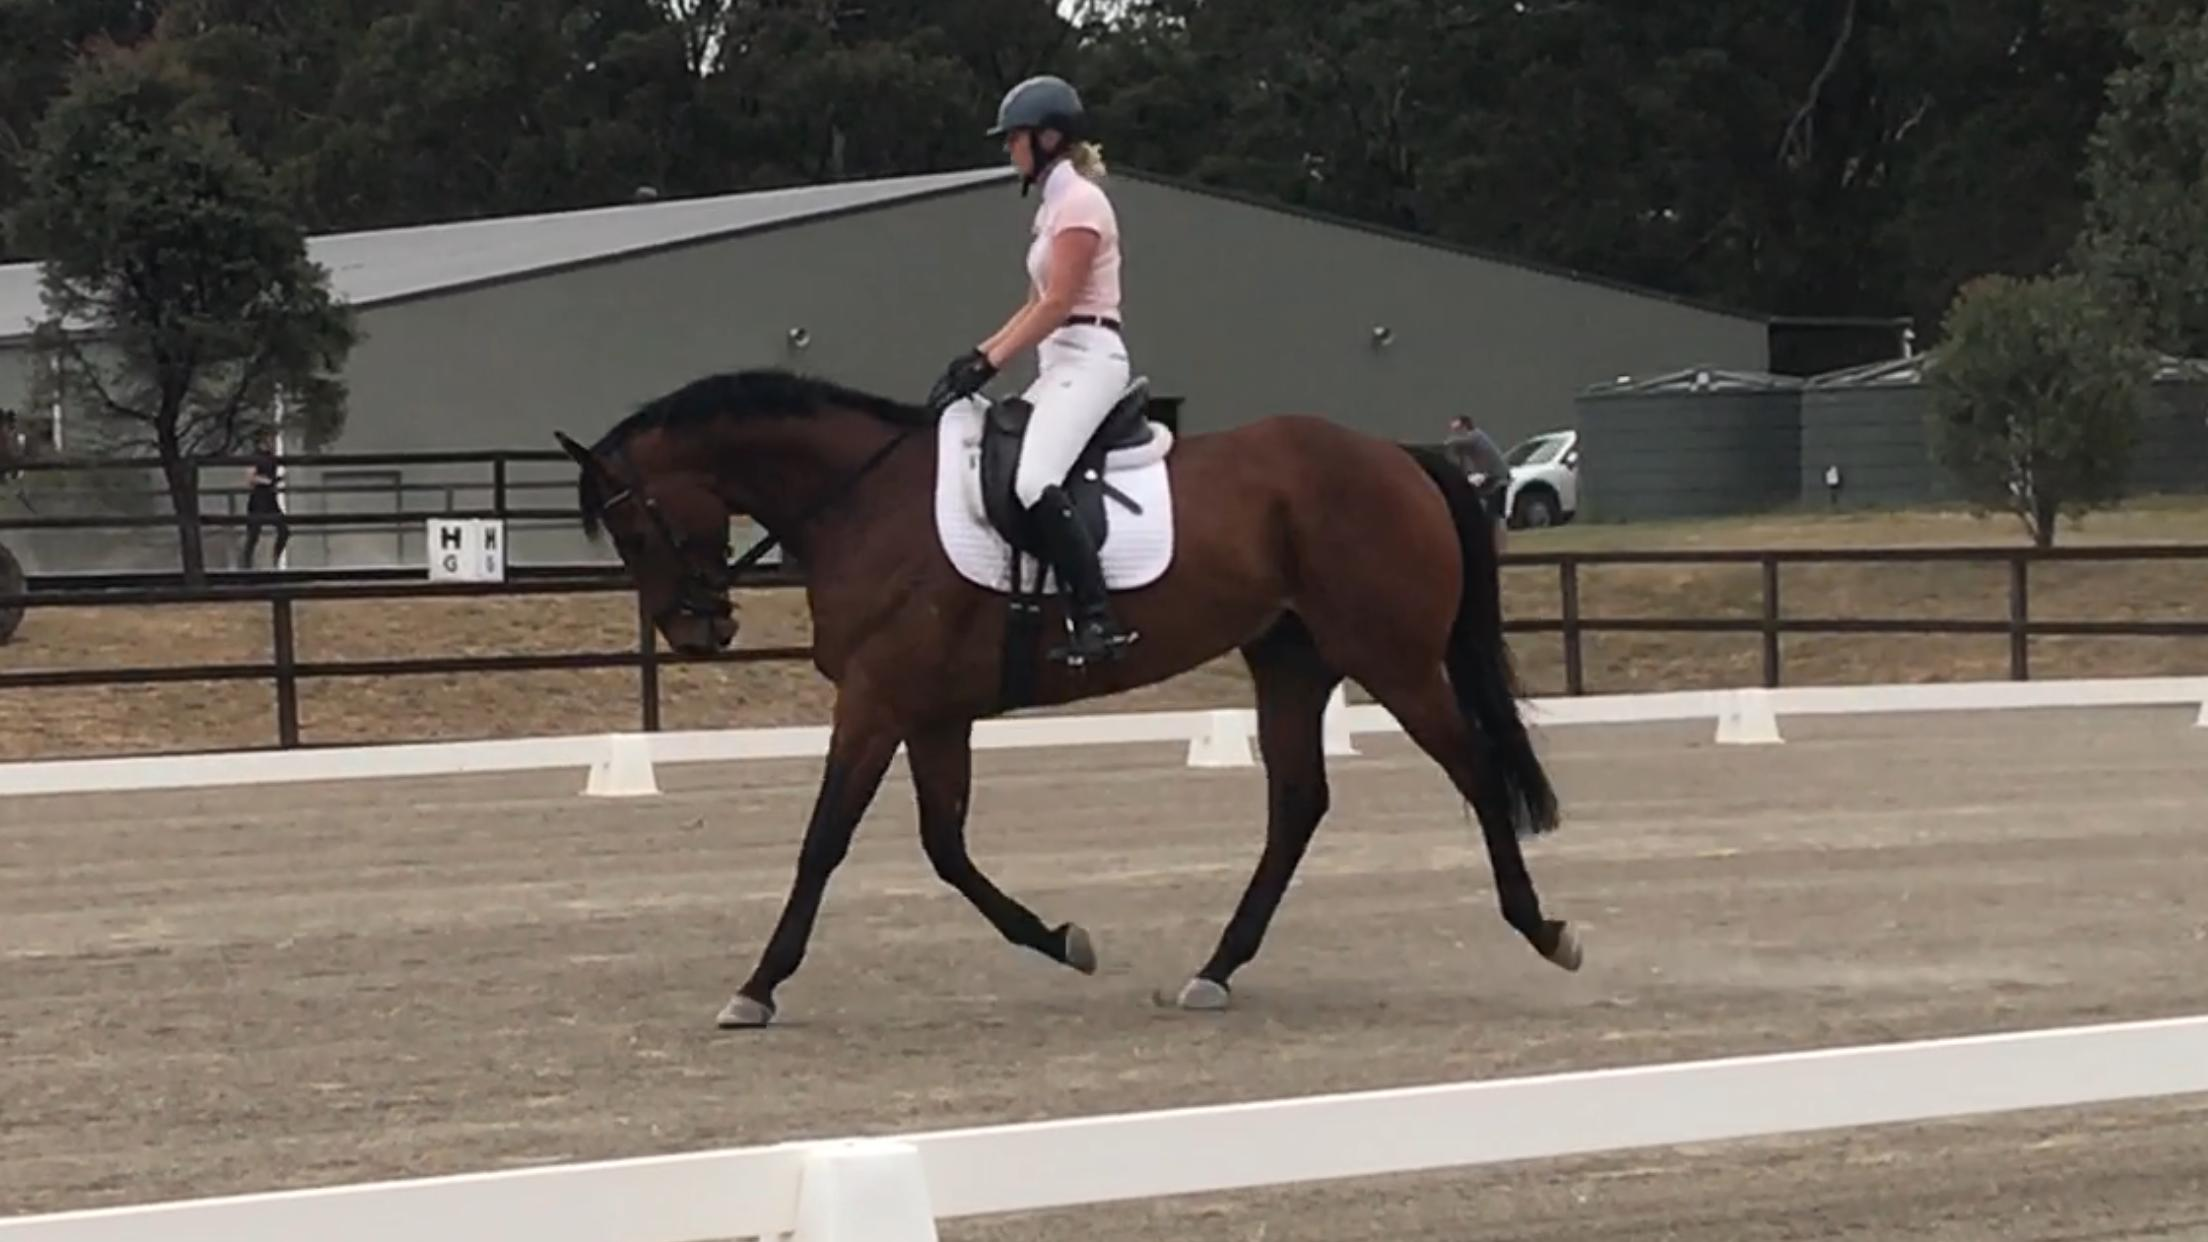 Huge Eventer/ Dressage or Hunter prospect